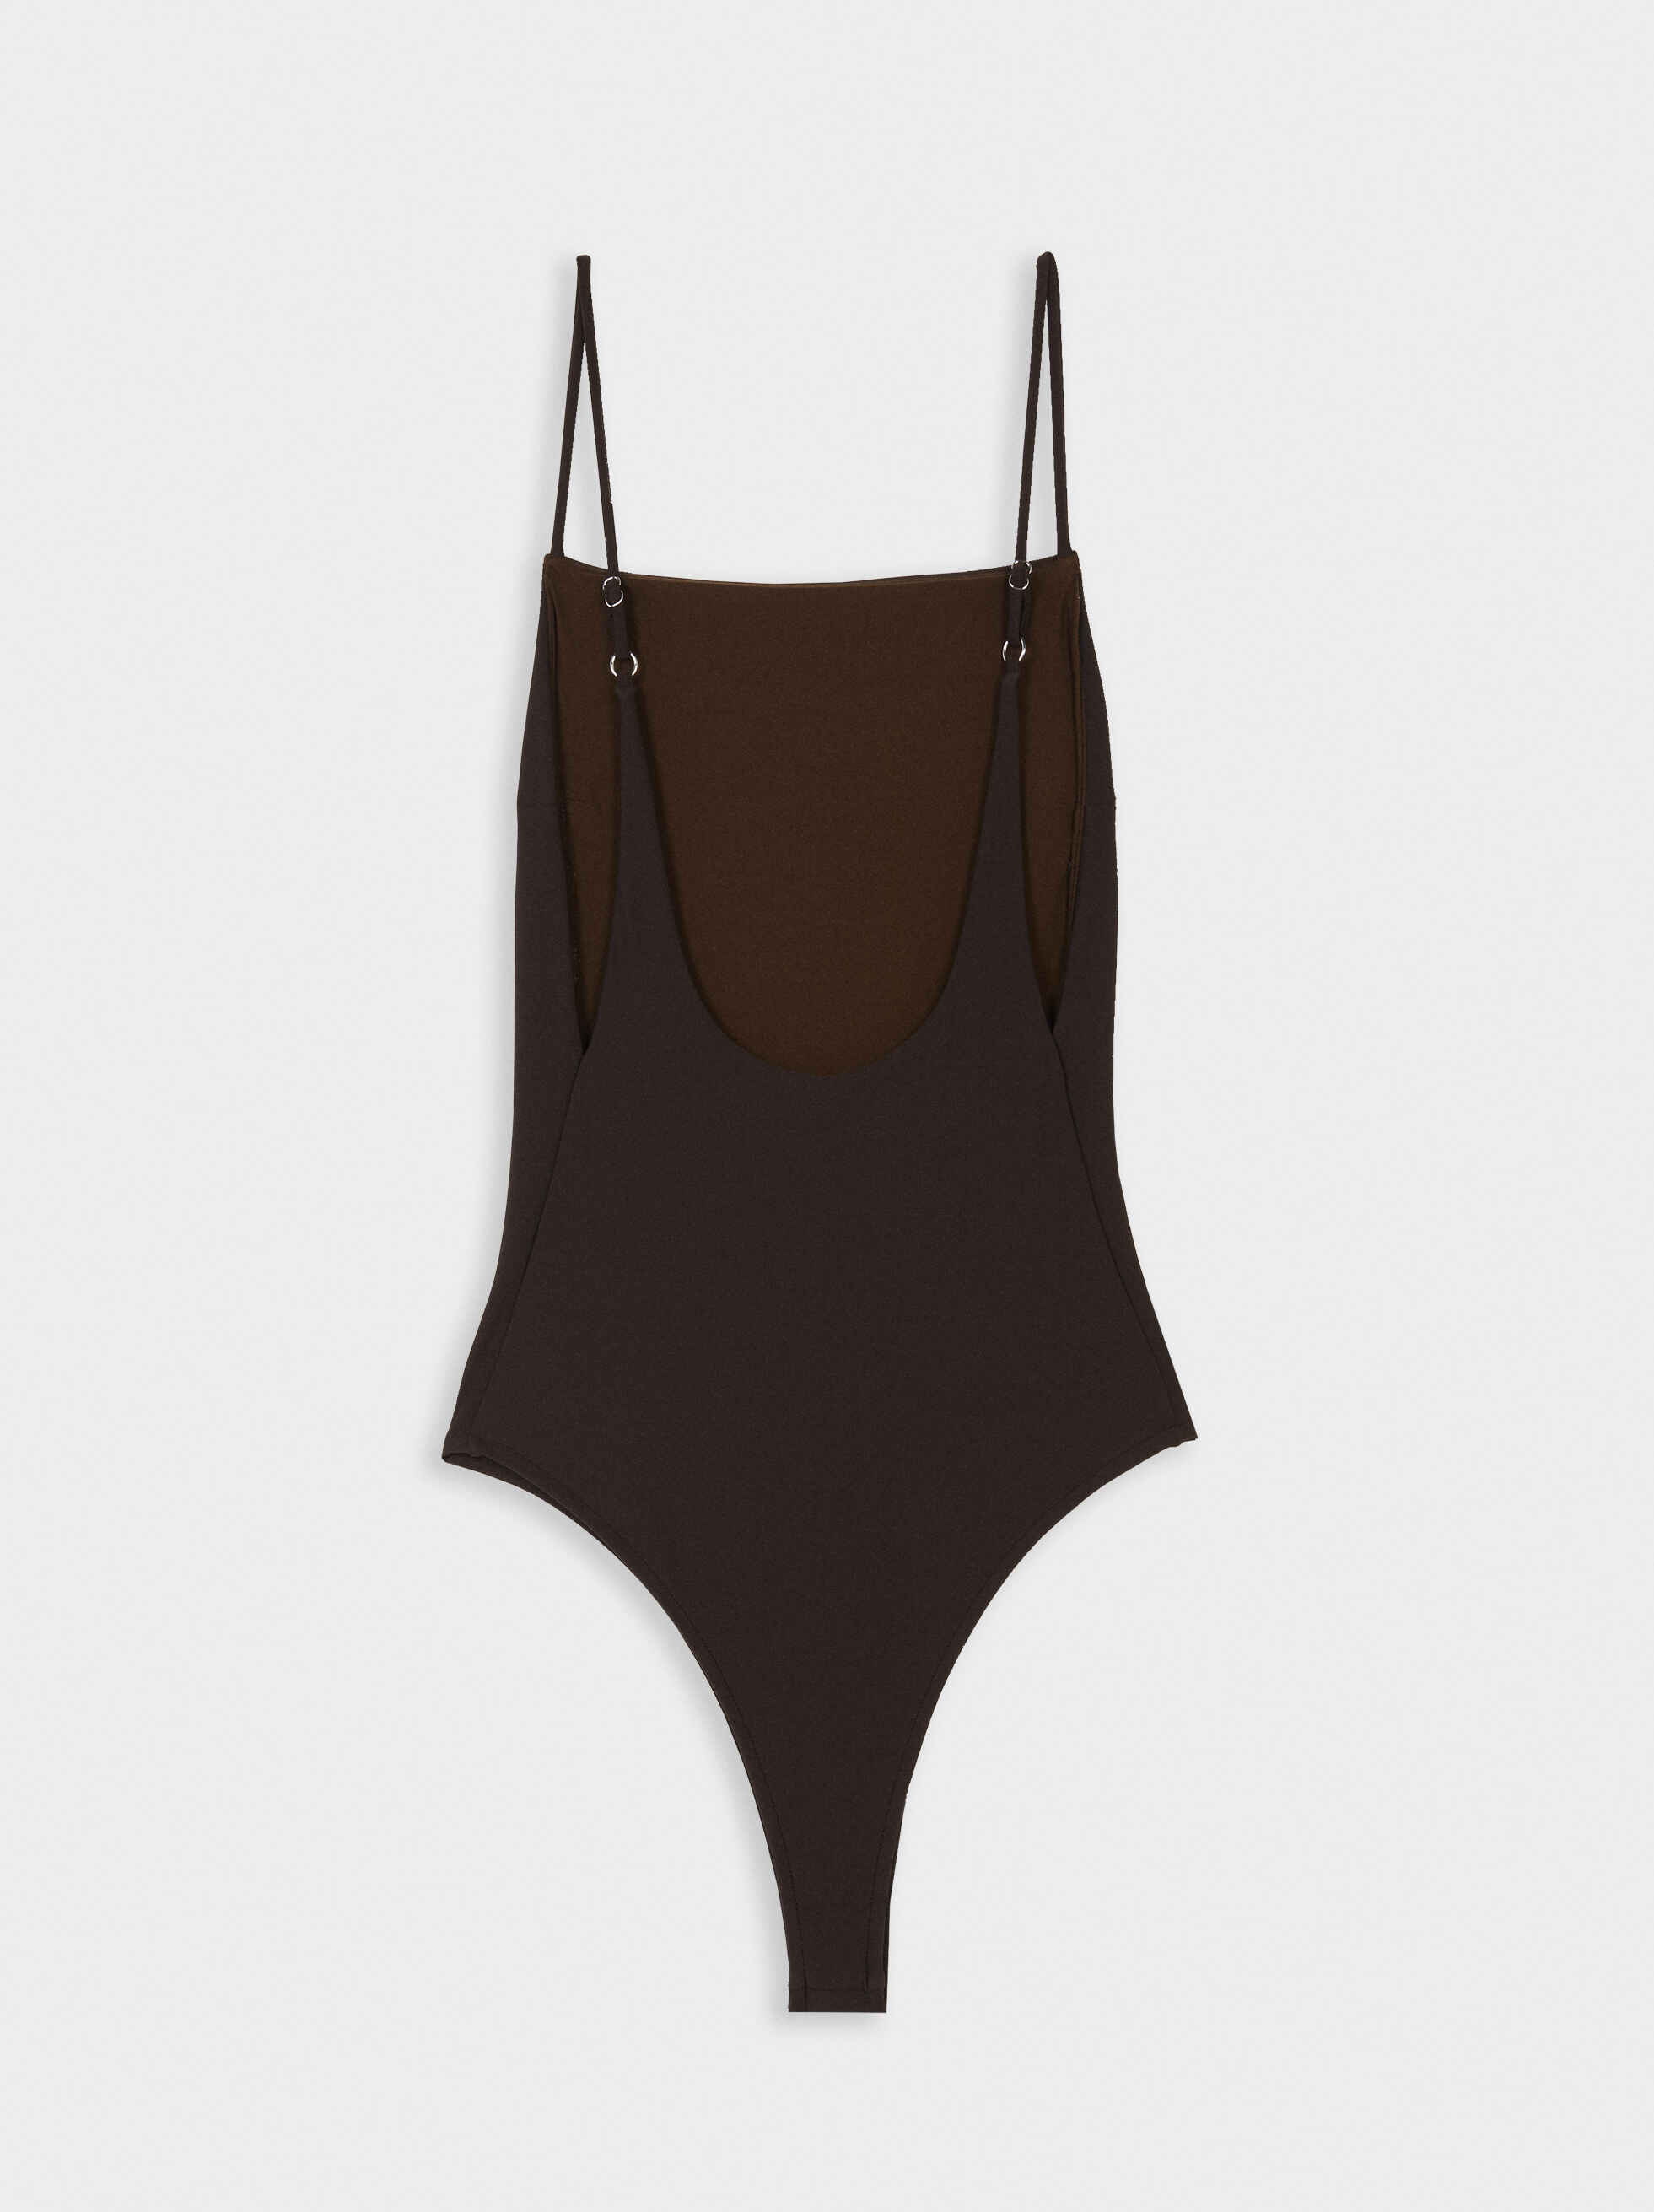 Swimming Costume With Straight Neckline, Brown, hi-res